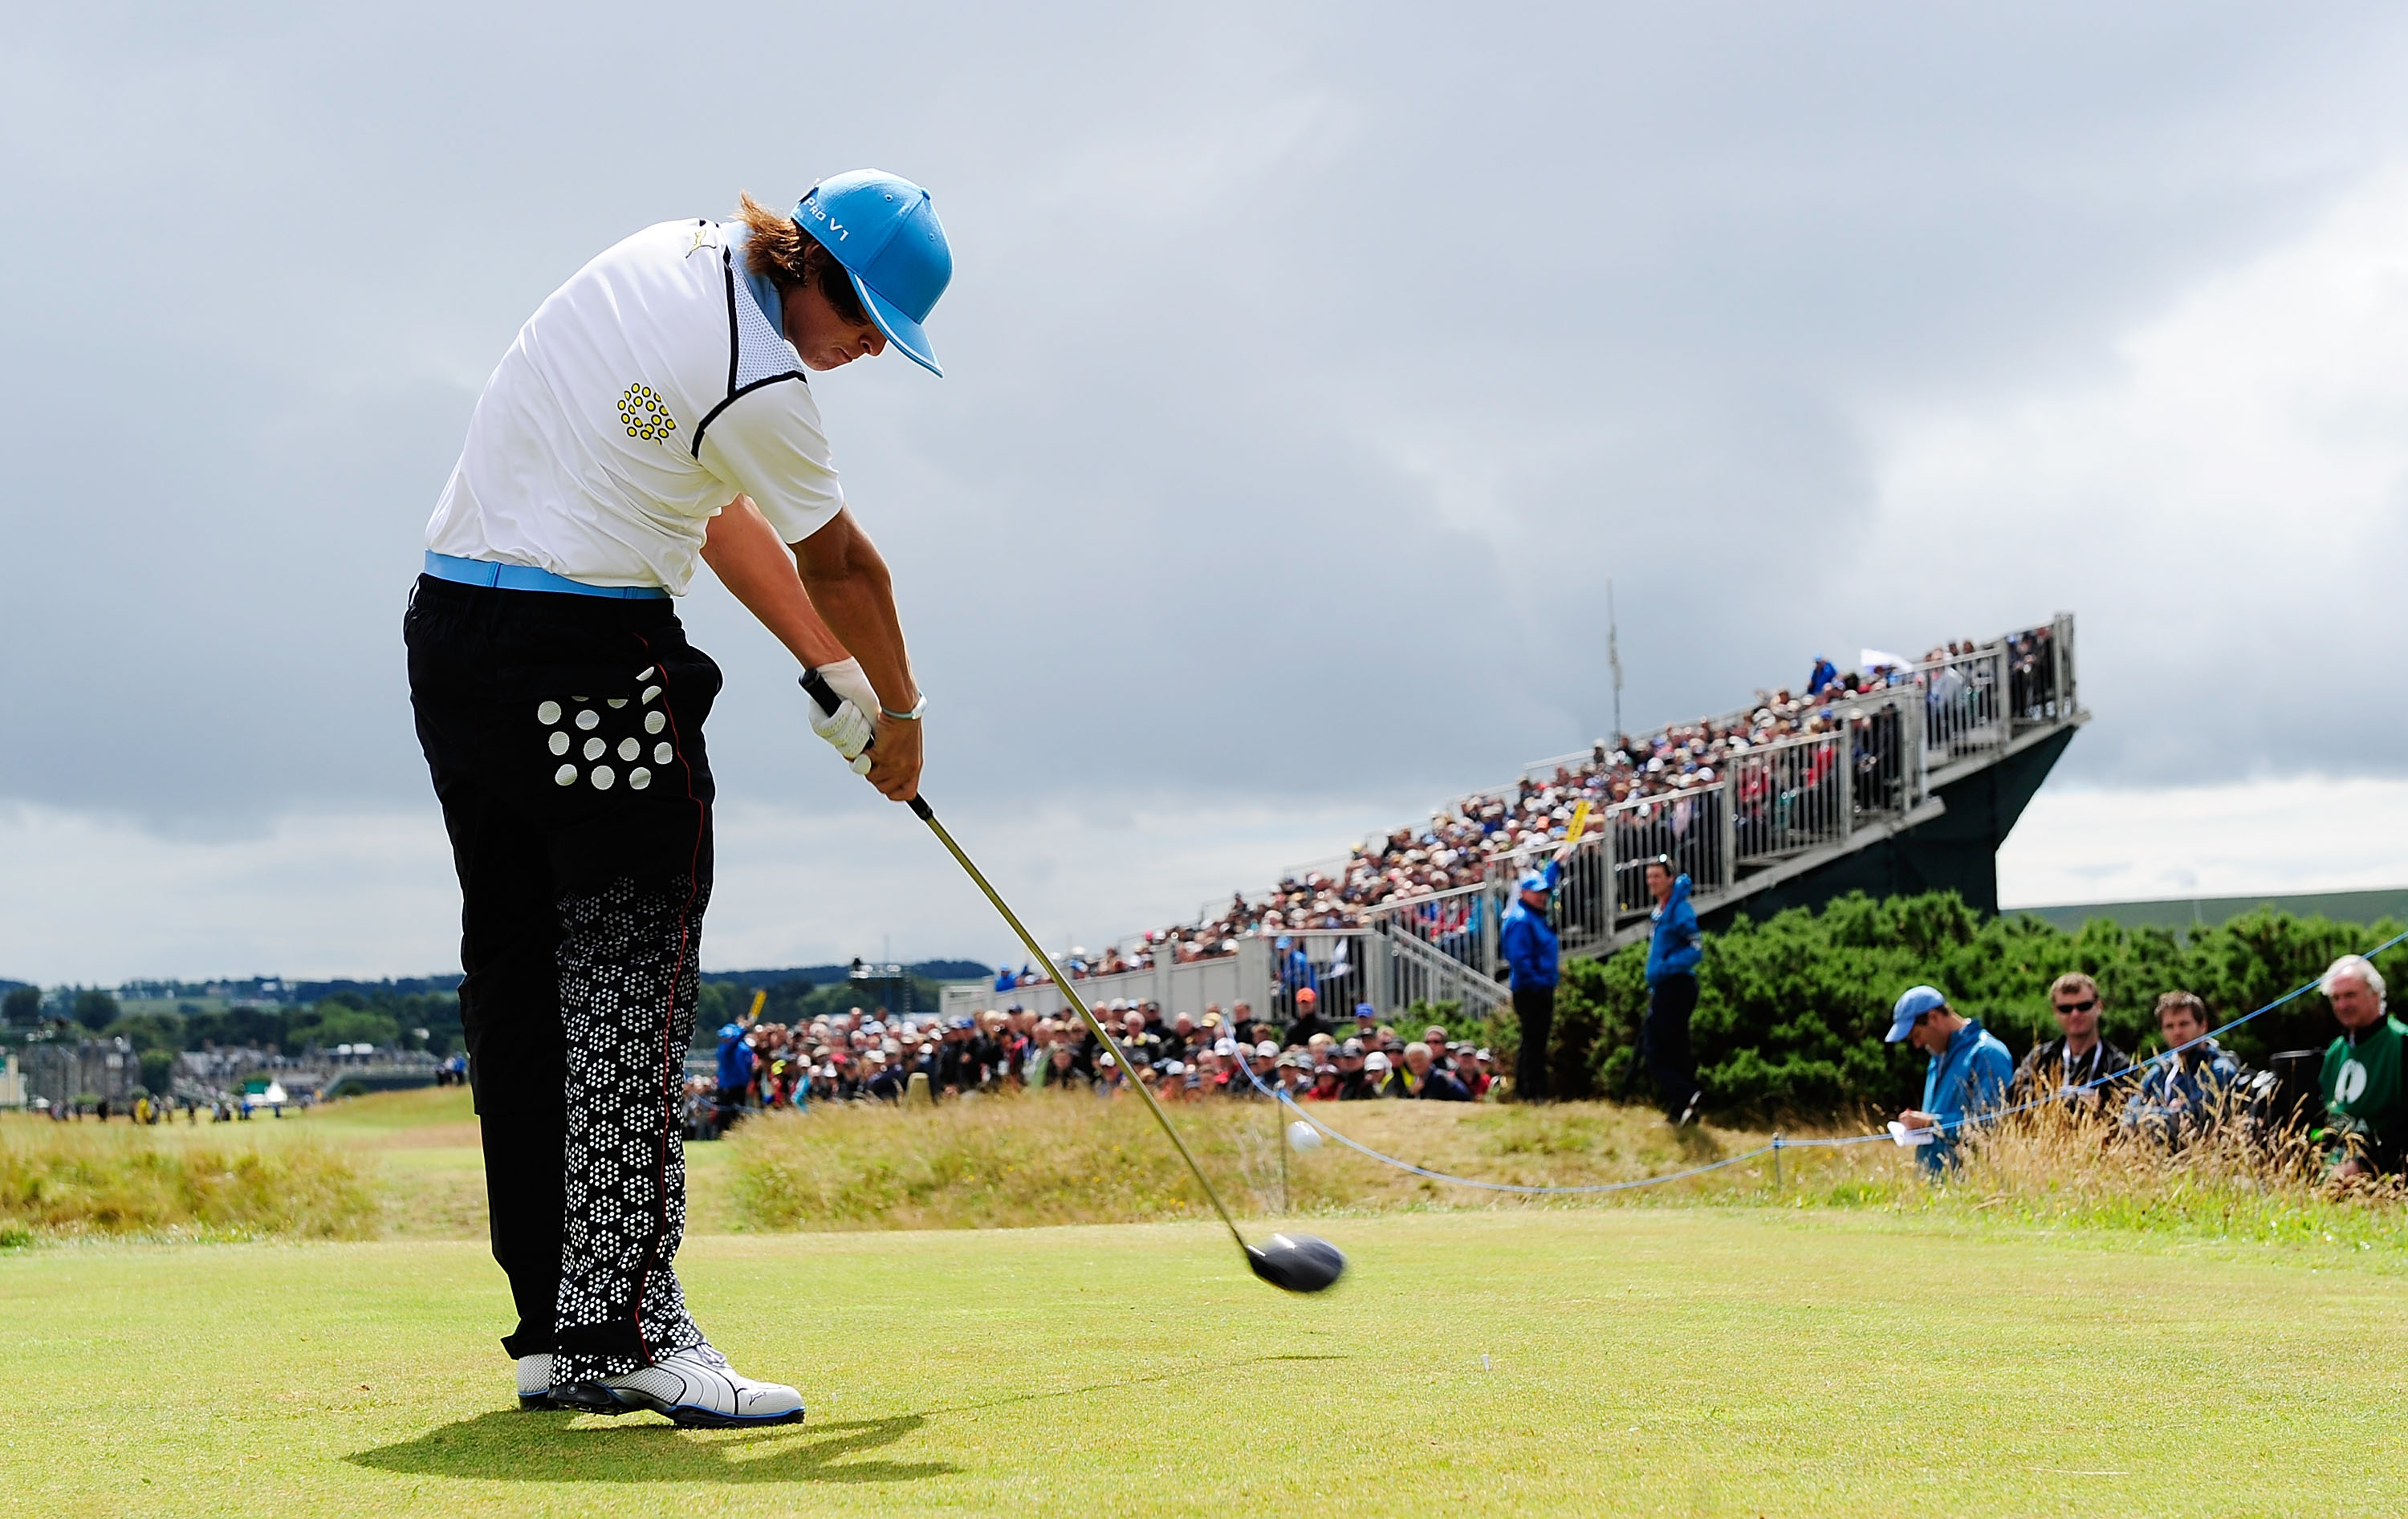 ST ANDREWS, SCOTLAND - JULY 16:  Ricky Fowler of the USA tees off on the 15th hole during the second round of the 139th Open Championship on the Old Course, St Andrews on July 16, 2010 in St Andrews, Scotland.  (Photo by Stuart Franklin/Getty Images)